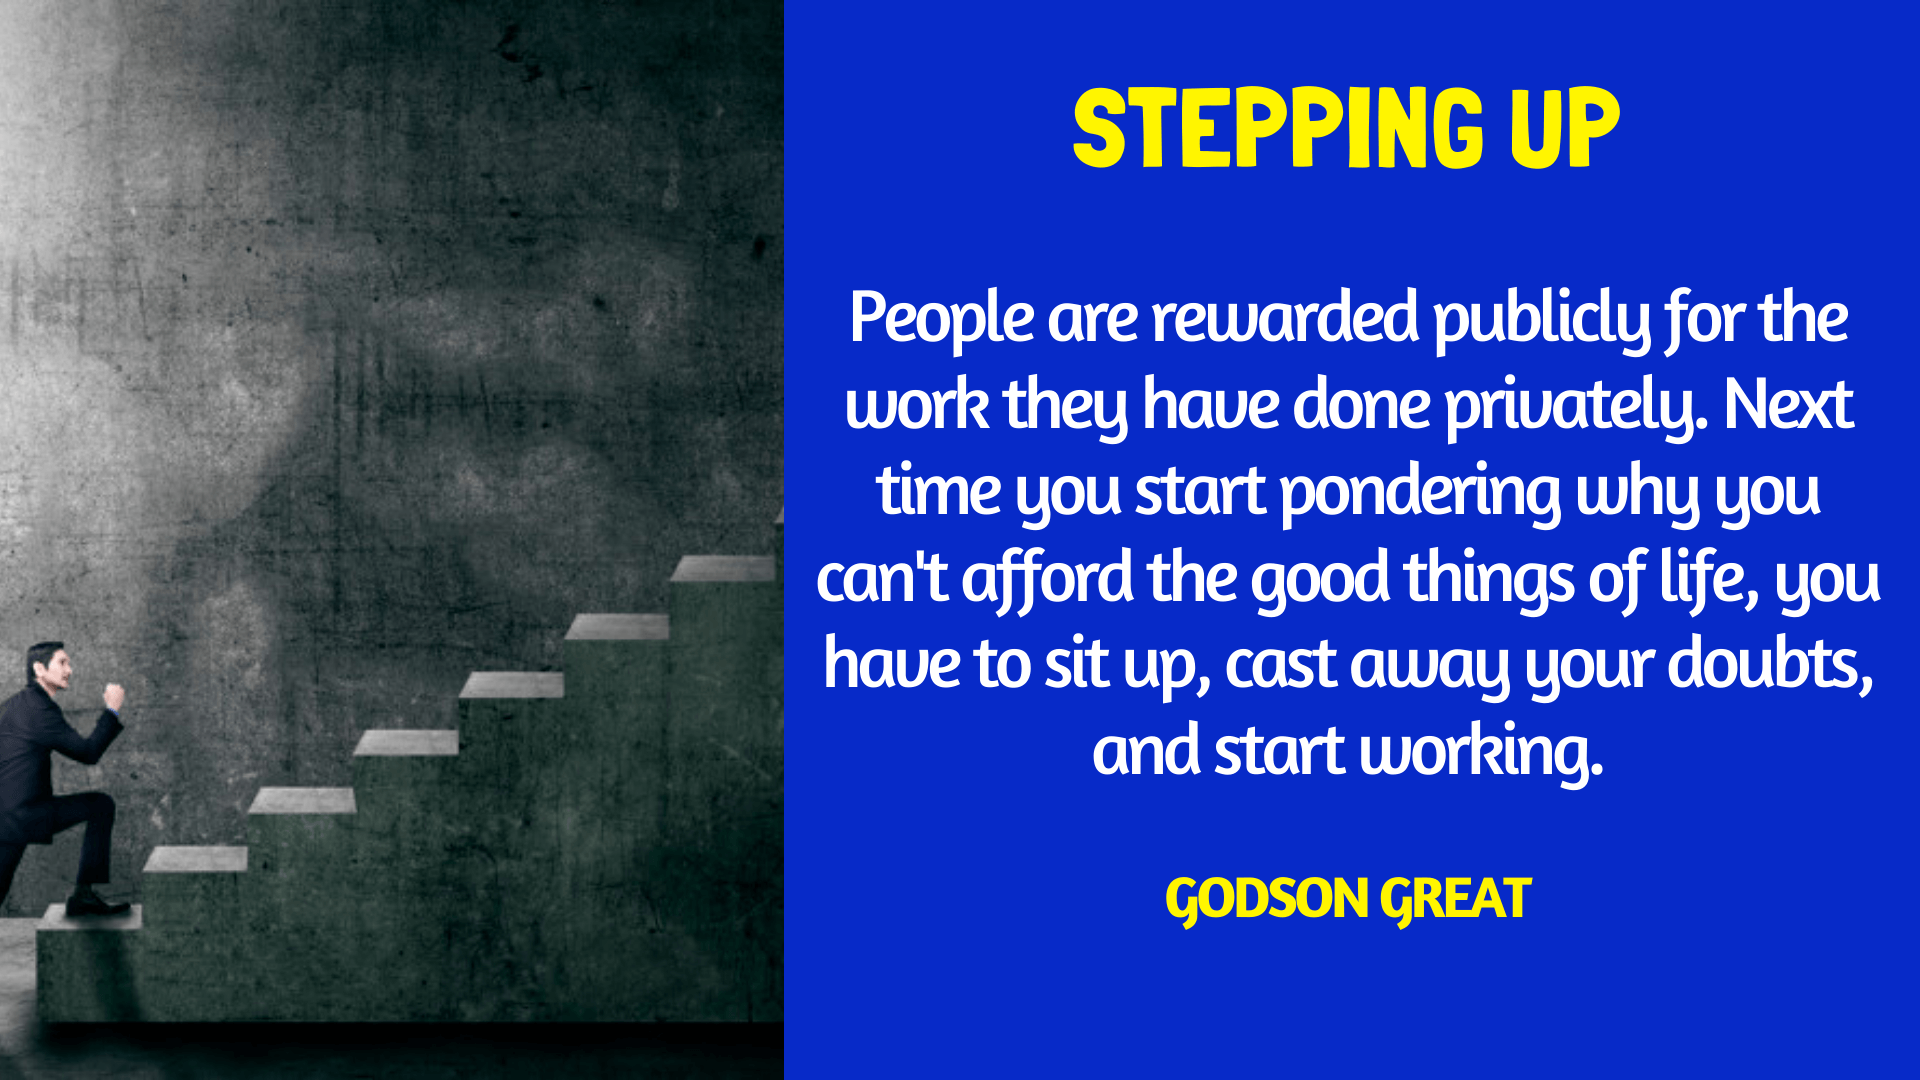 STEPPING UP - GODSON GREAT